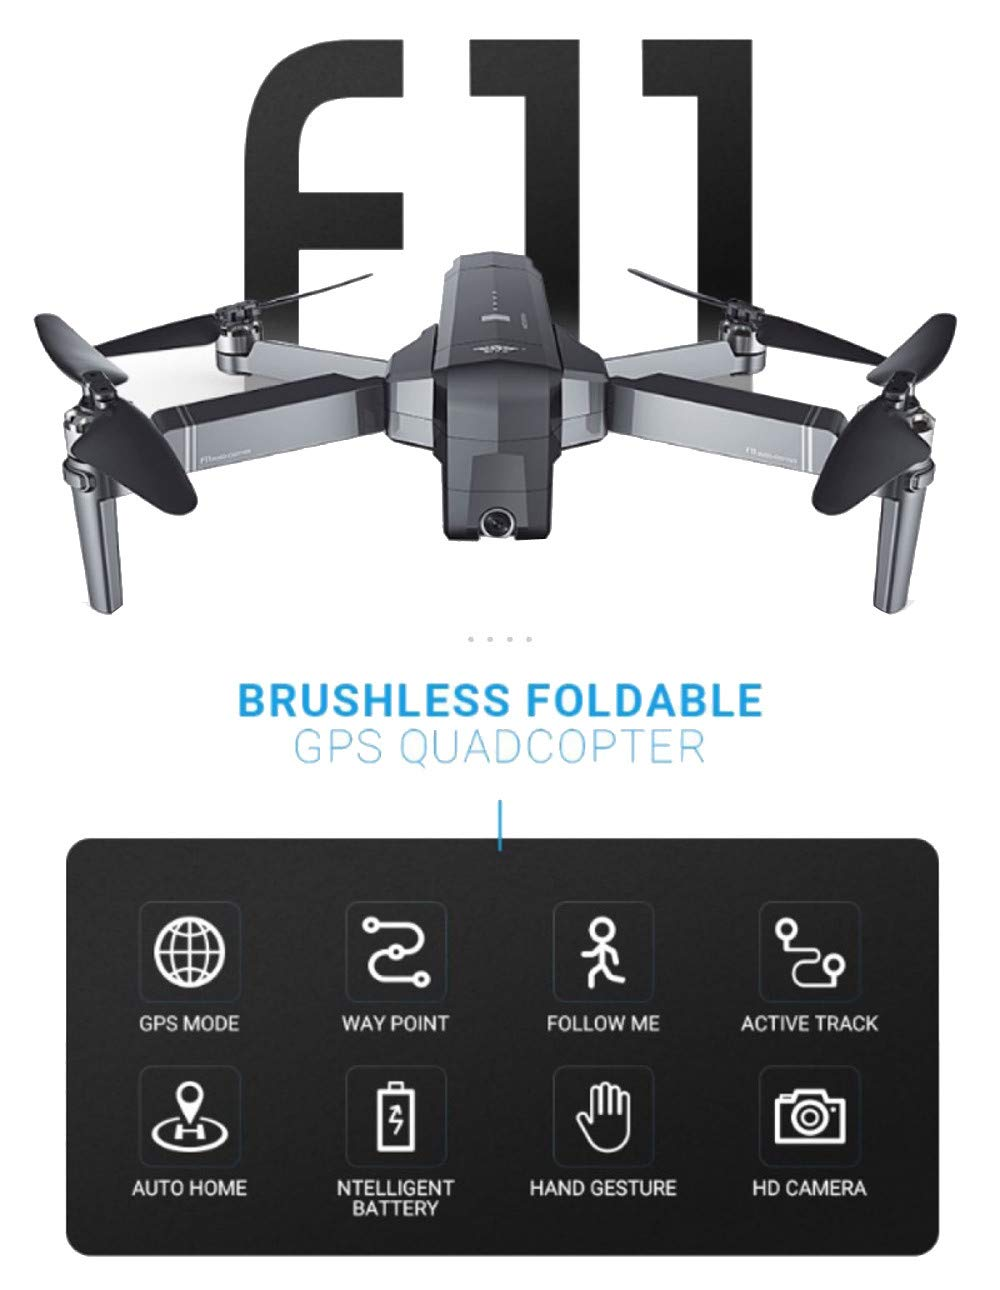 Yu2d 🛩🛩New SJRC F11 GPS 5G WiFi FPV 1080P HD Cam Foldable Brushless RC Drone Quadcopter by Yu2d_ Drone Accessories (Image #5)